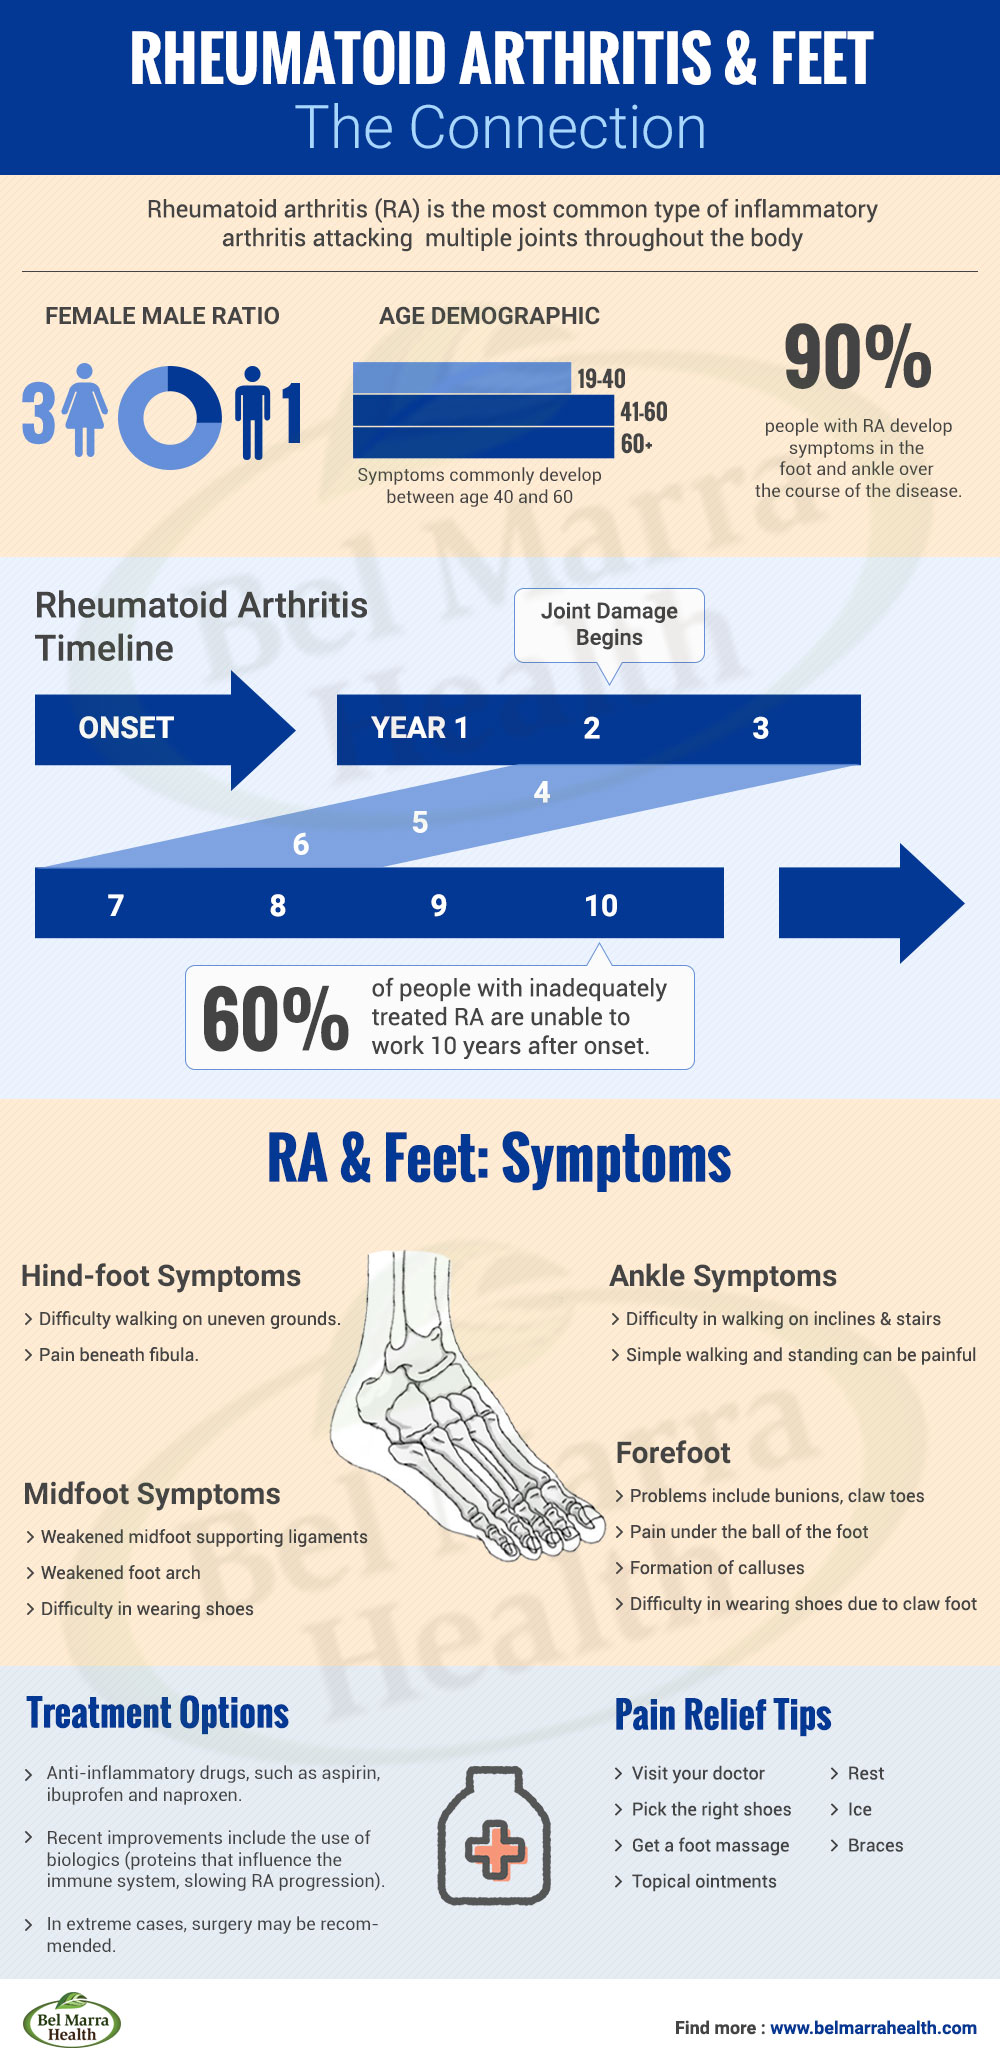 Rheumatoid Arthritis and Feet – The Connection